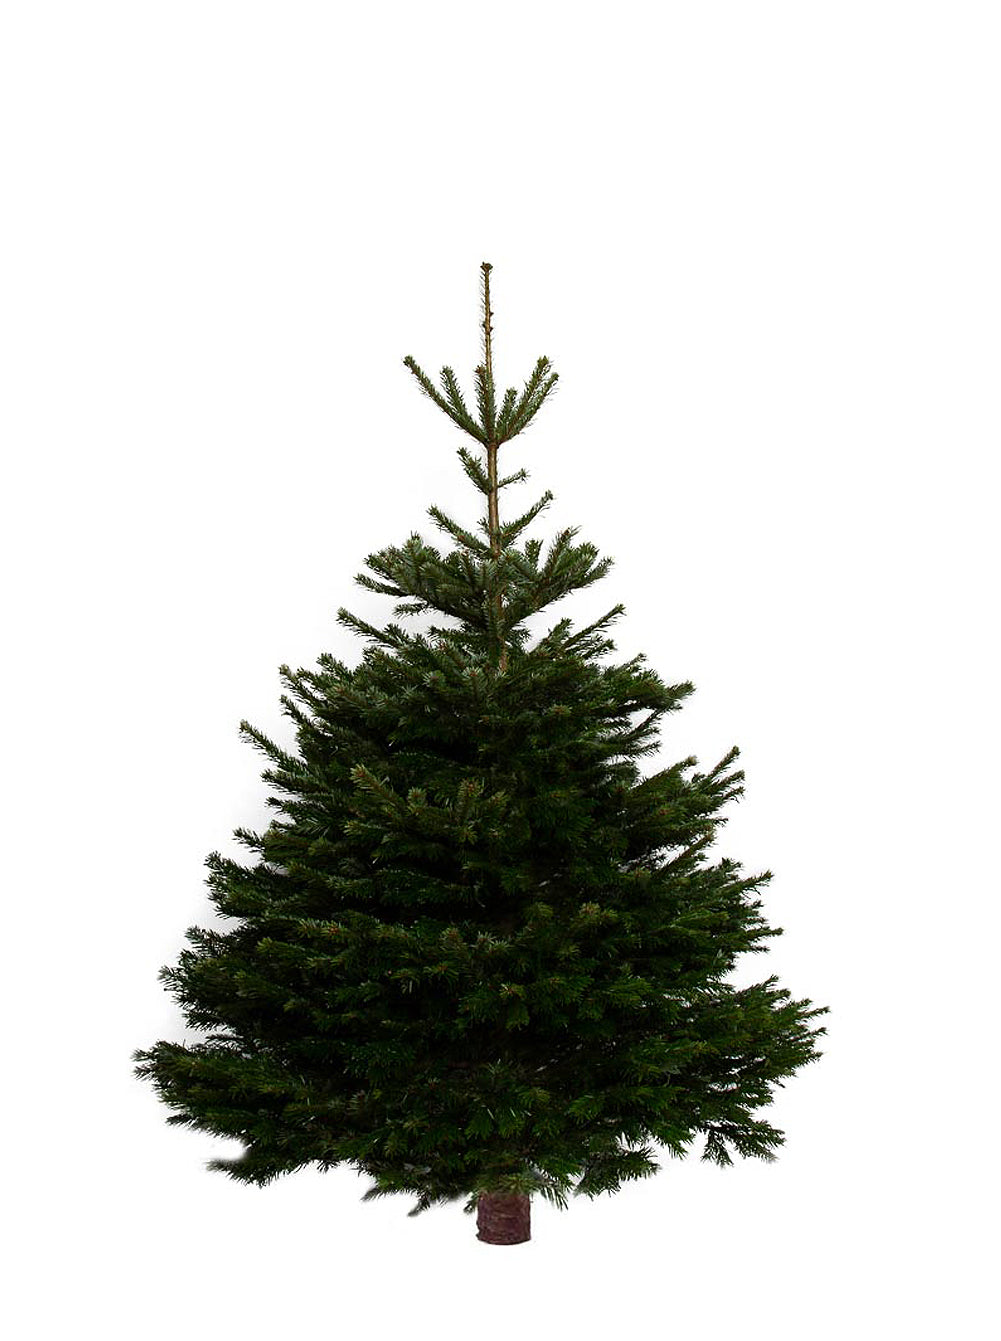 7ft Nordmann Fir Christmas Tree from Pines and Needles